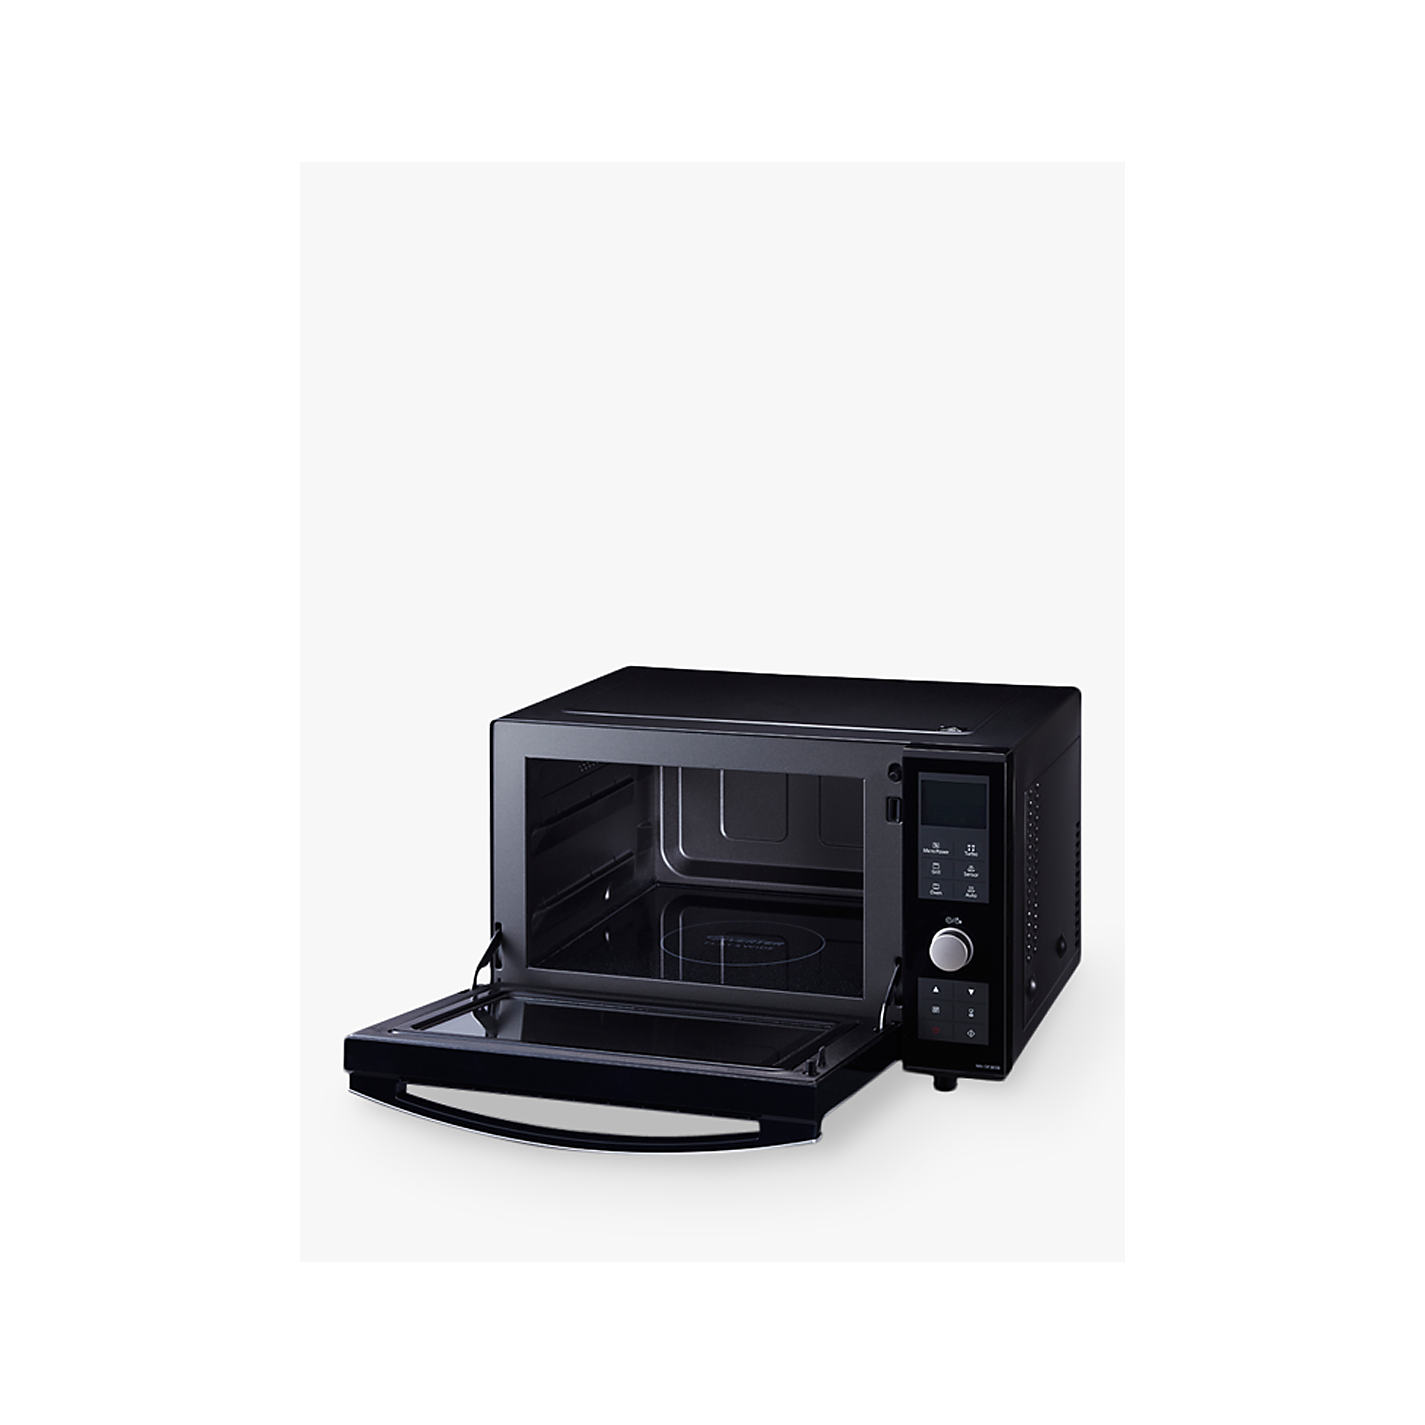 Panasonic Nn Df386bbpq Freestanding 3 In 1 Combination Microwave Oven With Grill